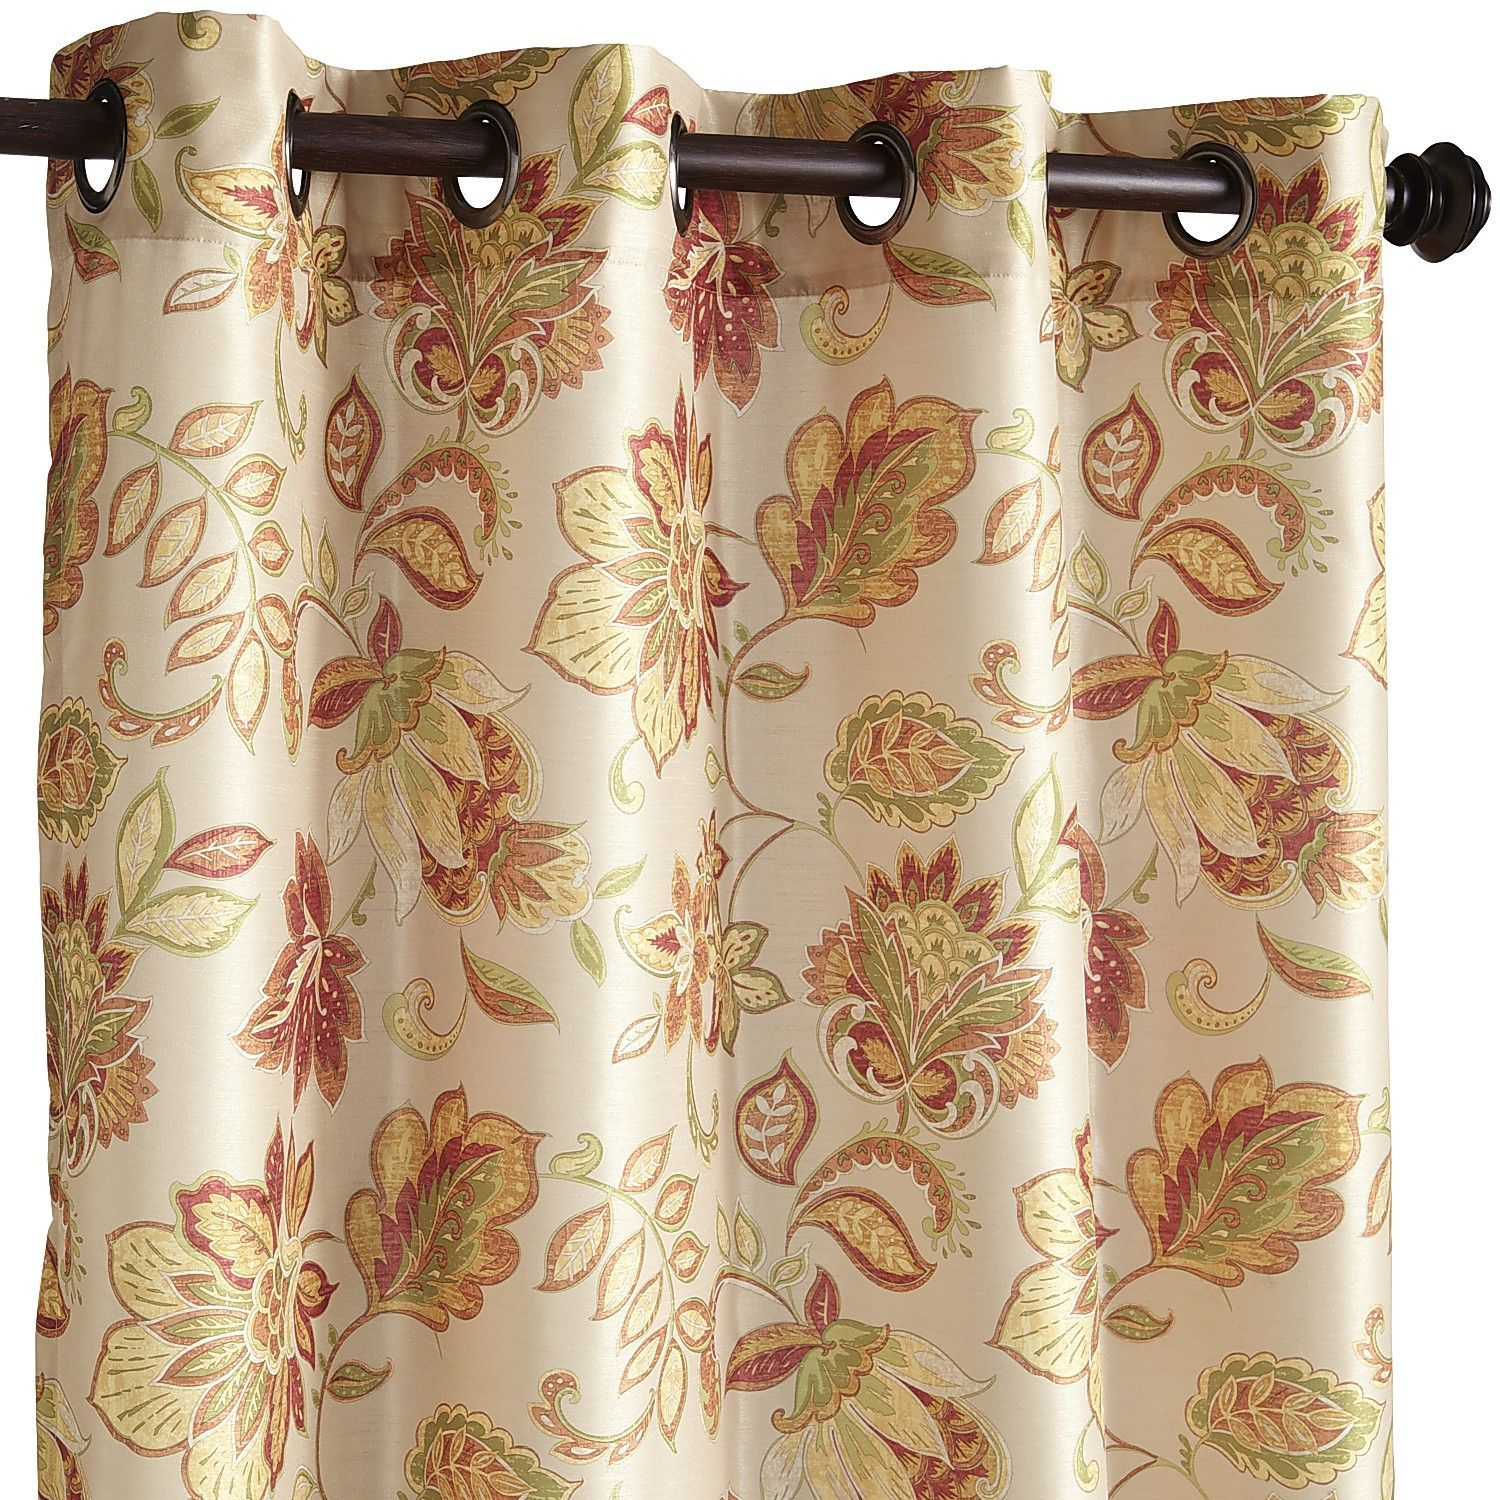 living room window valance ideas%0A Glencove Floral Spice      Grommet Curtain  Living Room IdeasGrommet